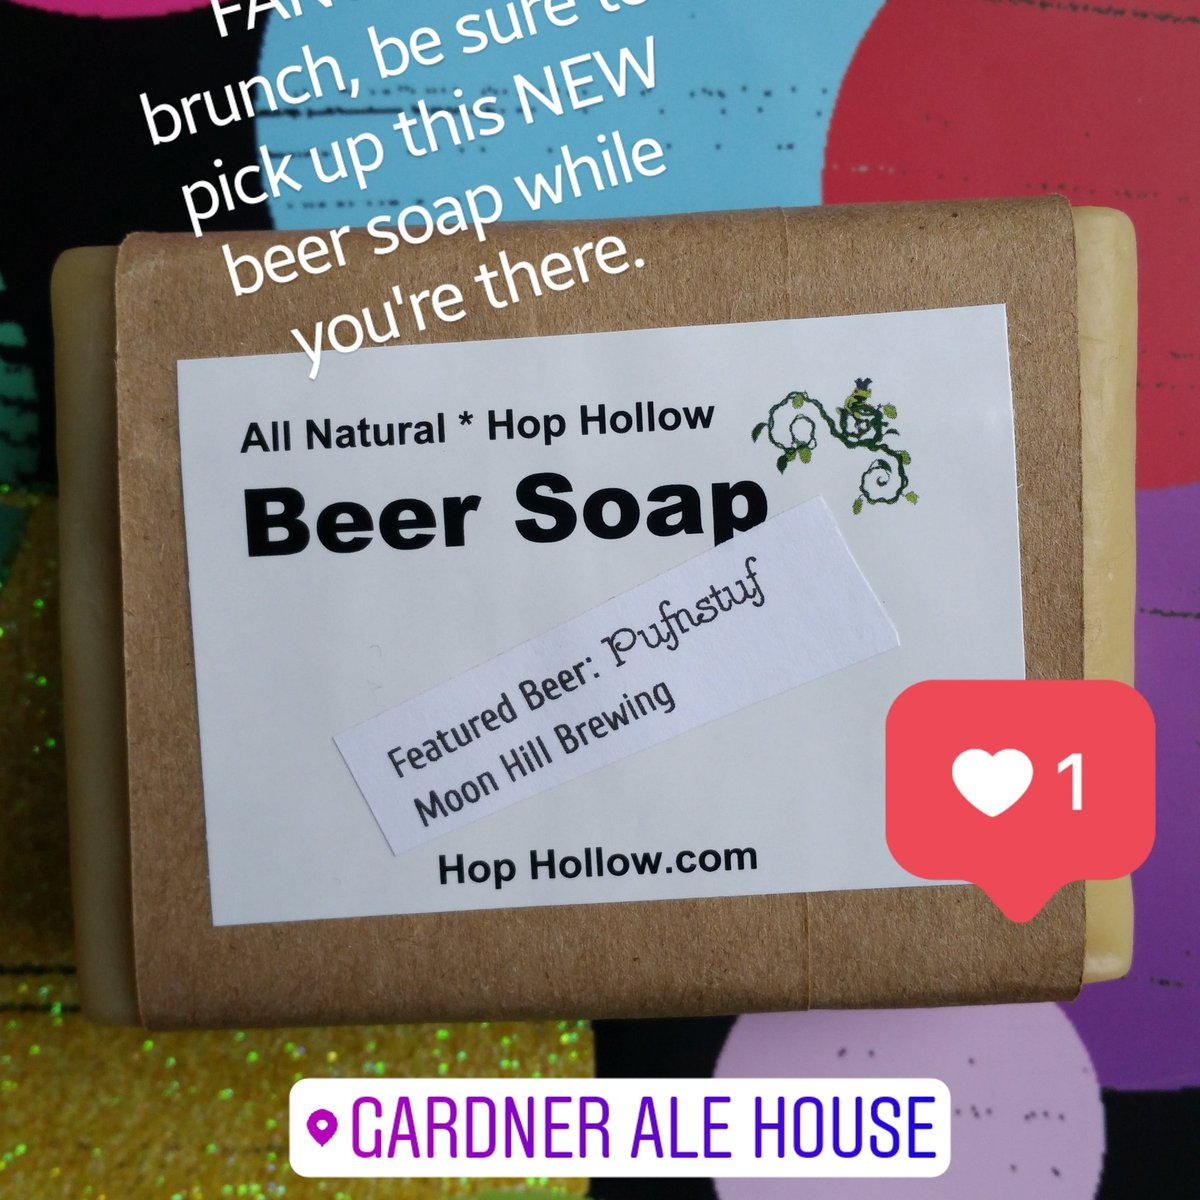 Gardner Ale House has a great Sunday morning brunch ! Pick up the newest big, chunky, citrusy beer soap bar while you're there  : ) #SundayMorning #sundaybrunch #Gardner #beerfans #beersoap #beerlover #localfavorite #hoppymagic #StPatricksDay #